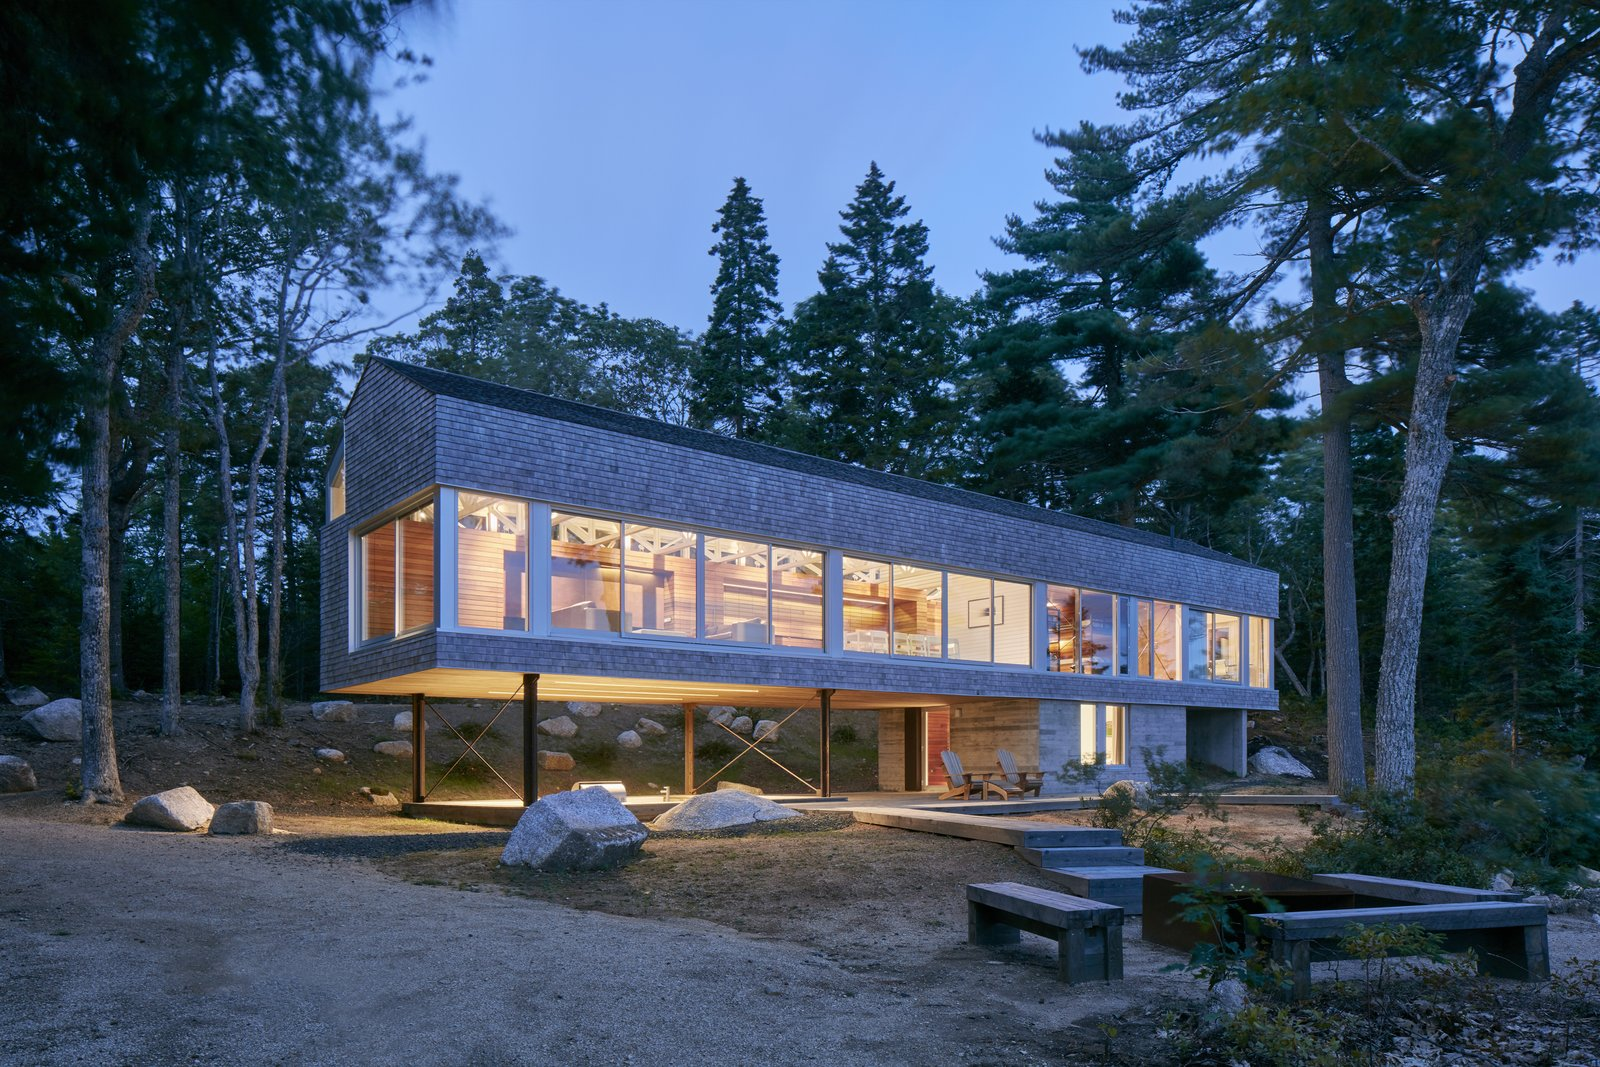 Exterior, Wood Siding Material, Metal Roof Material, and Shed RoofLine Mirror Point Cottage, hovering on legs of steel, recasts the idea of the weathered Nova Scotia fisherman's shack.  Best Photos from This Cedar-Shingle Cottage Gives Nova Scotia's Fishing History a Modern Spin